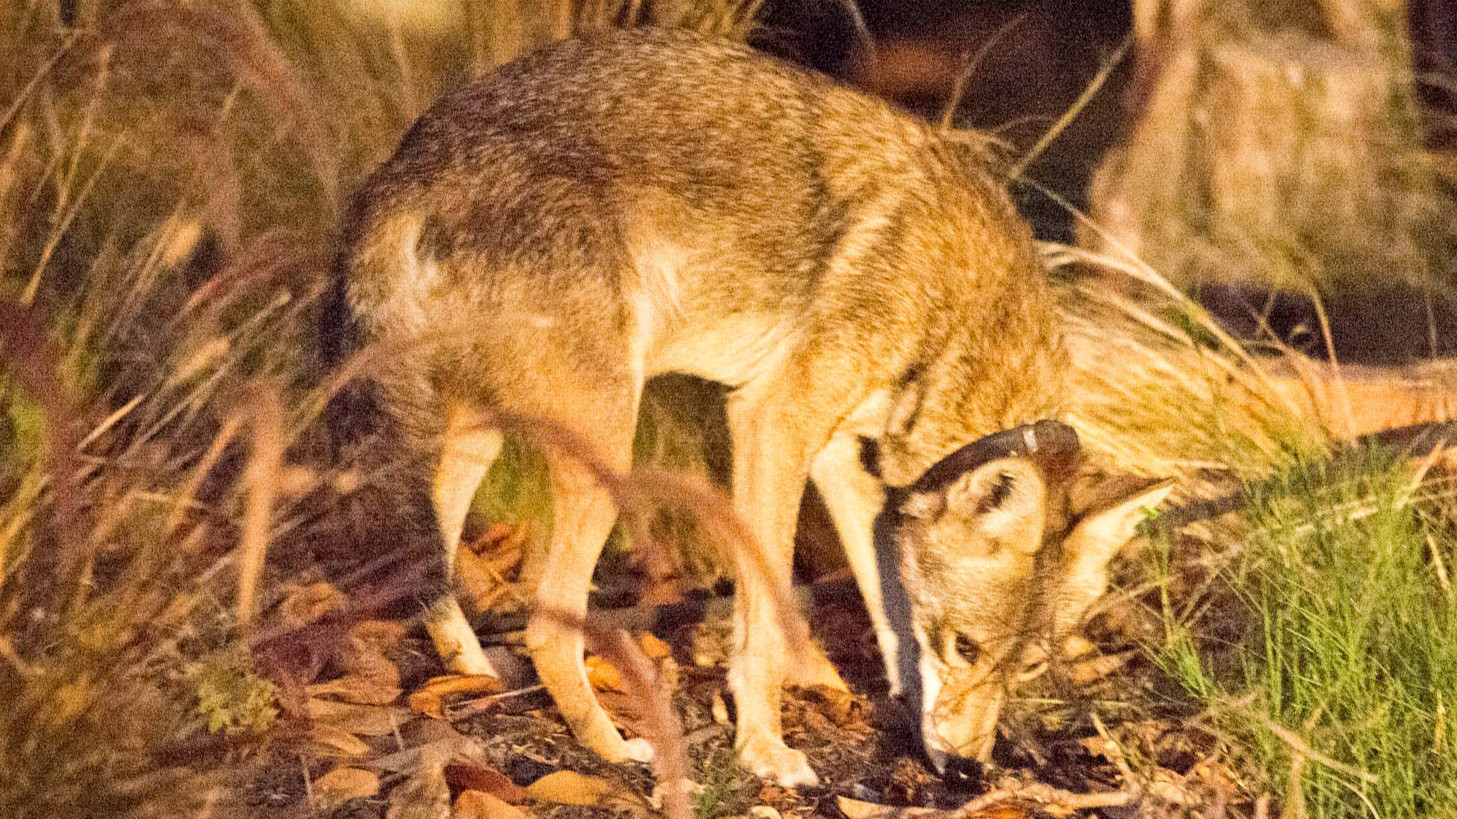 Coyote coexistence is a lifestyle California should export LA Times